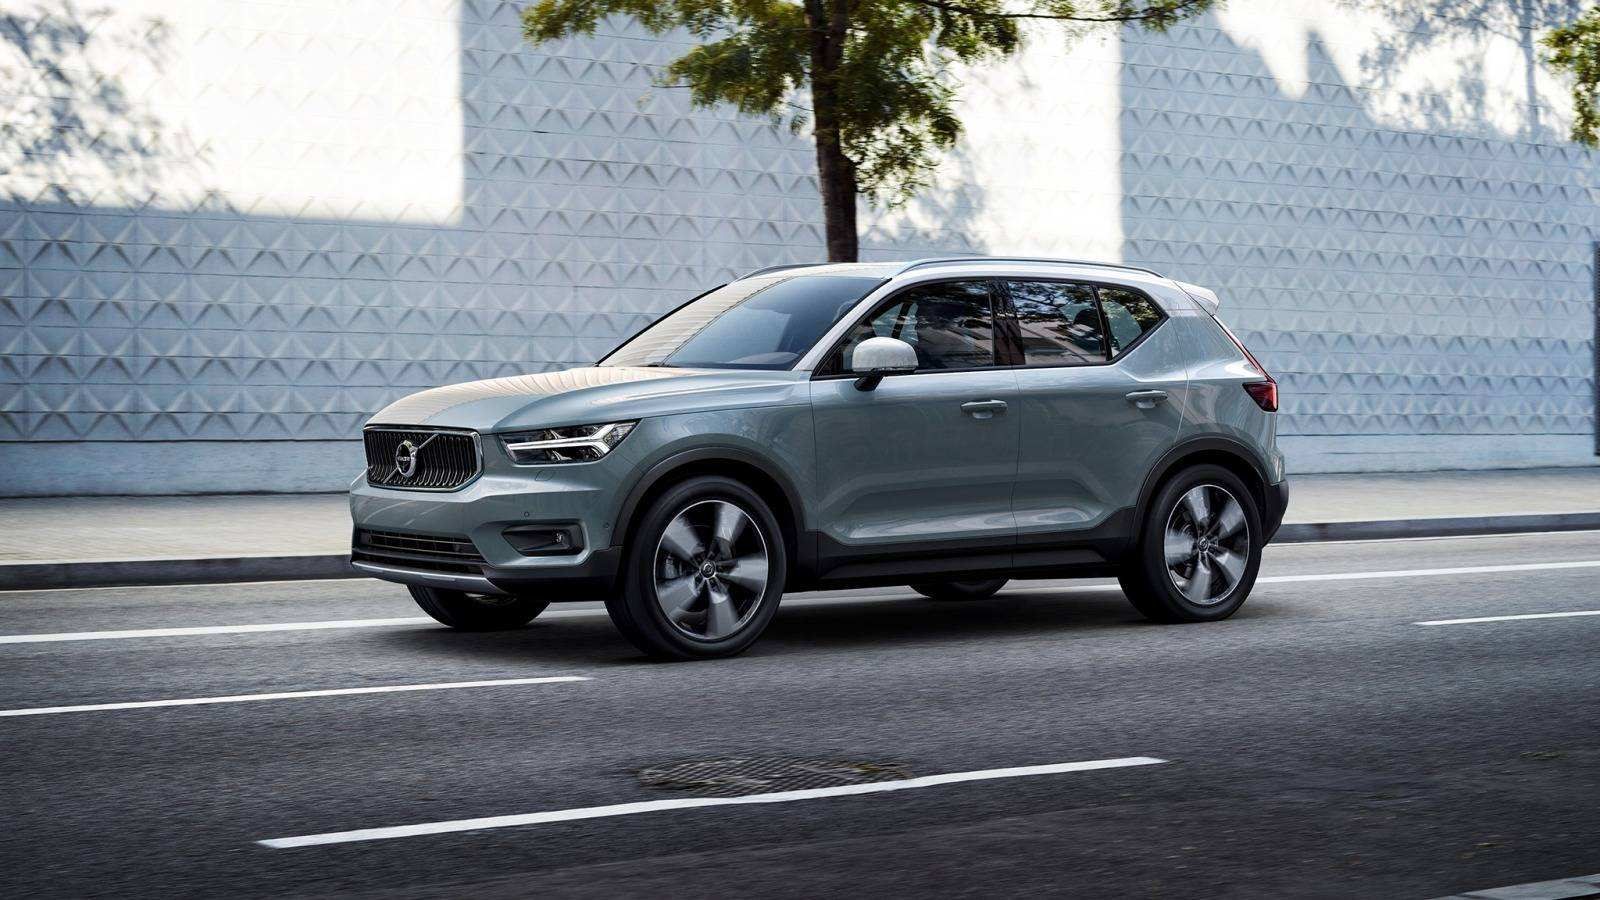 81 Concept of 2019 Volvo Xc40 Mpg Engine by 2019 Volvo Xc40 Mpg